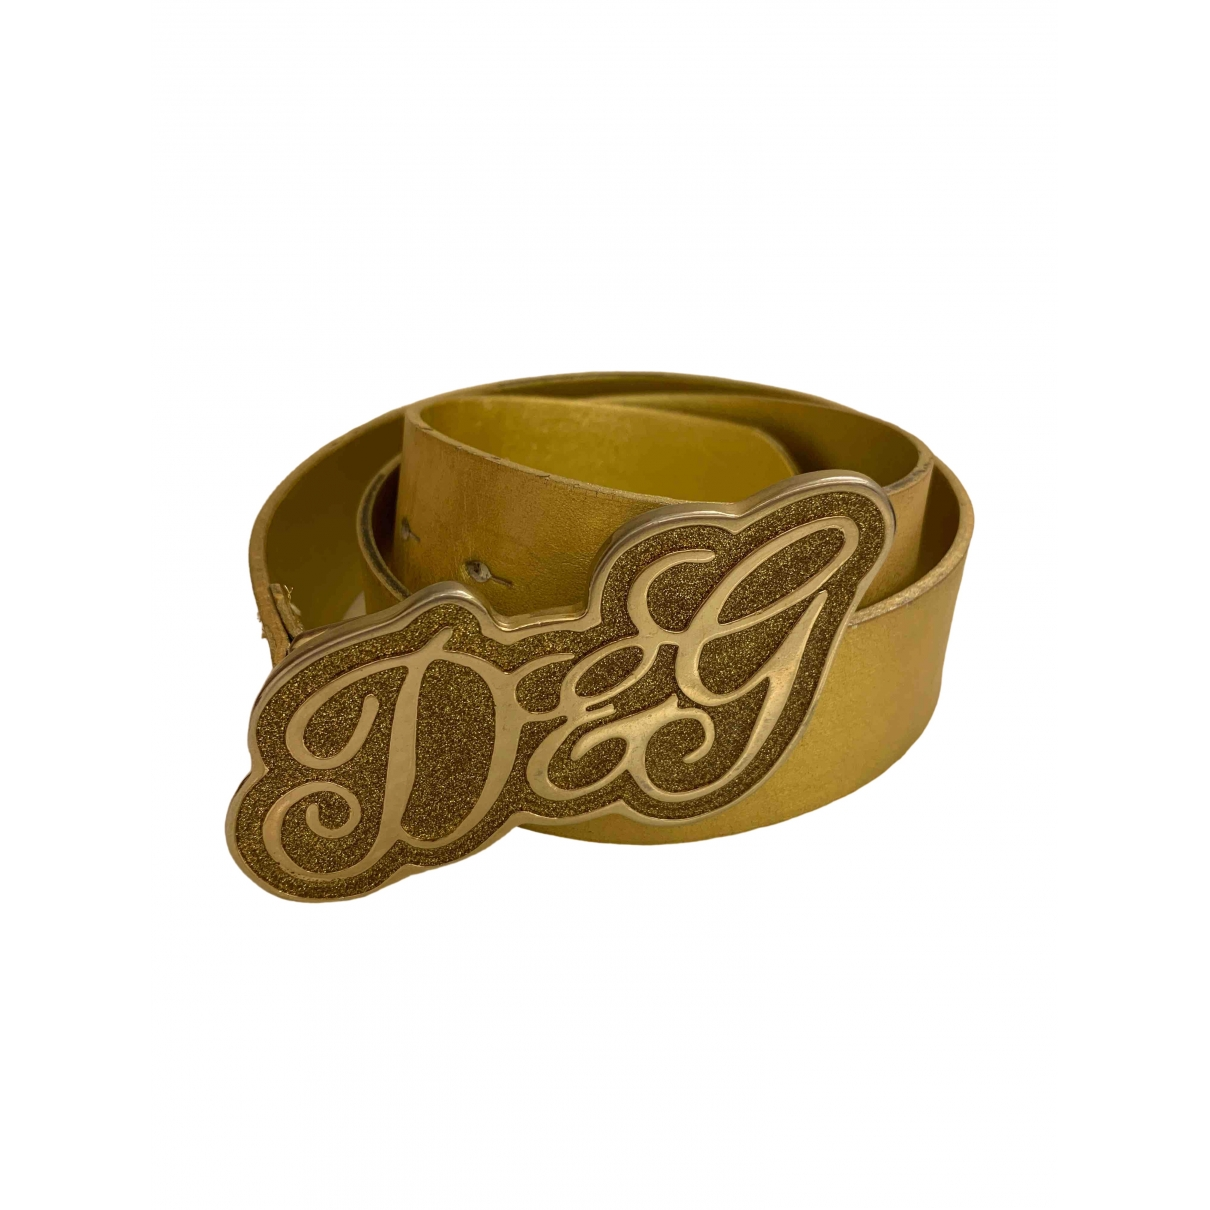 D&g \N Gold Leather belt for Women 85 cm